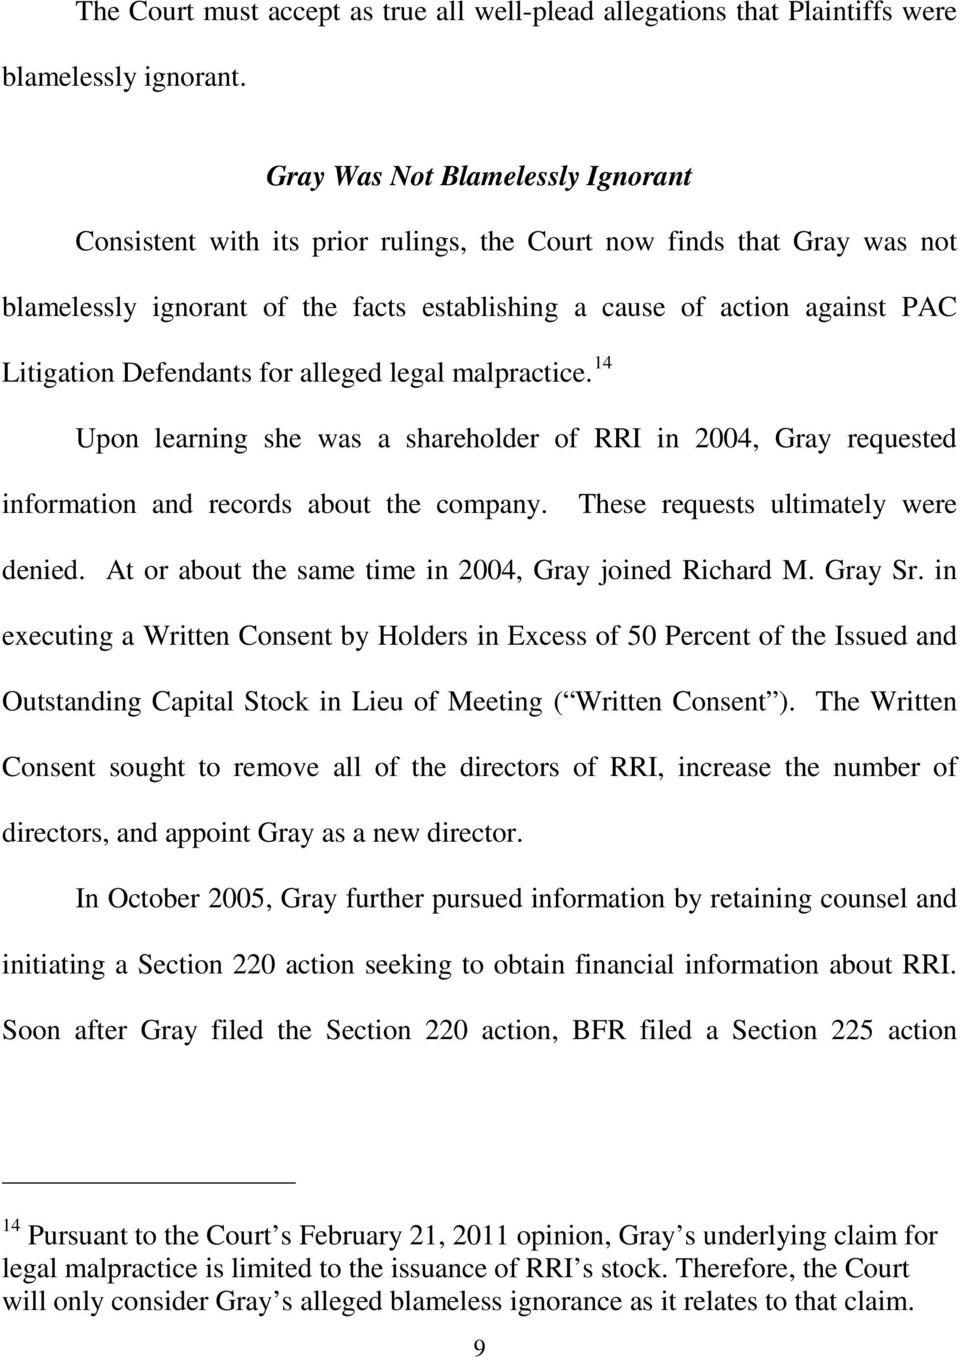 Defendants for alleged legal malpractice. 14 Upon learning she was a shareholder of RRI in 2004, Gray requested information and records about the company. These requests ultimately were denied.